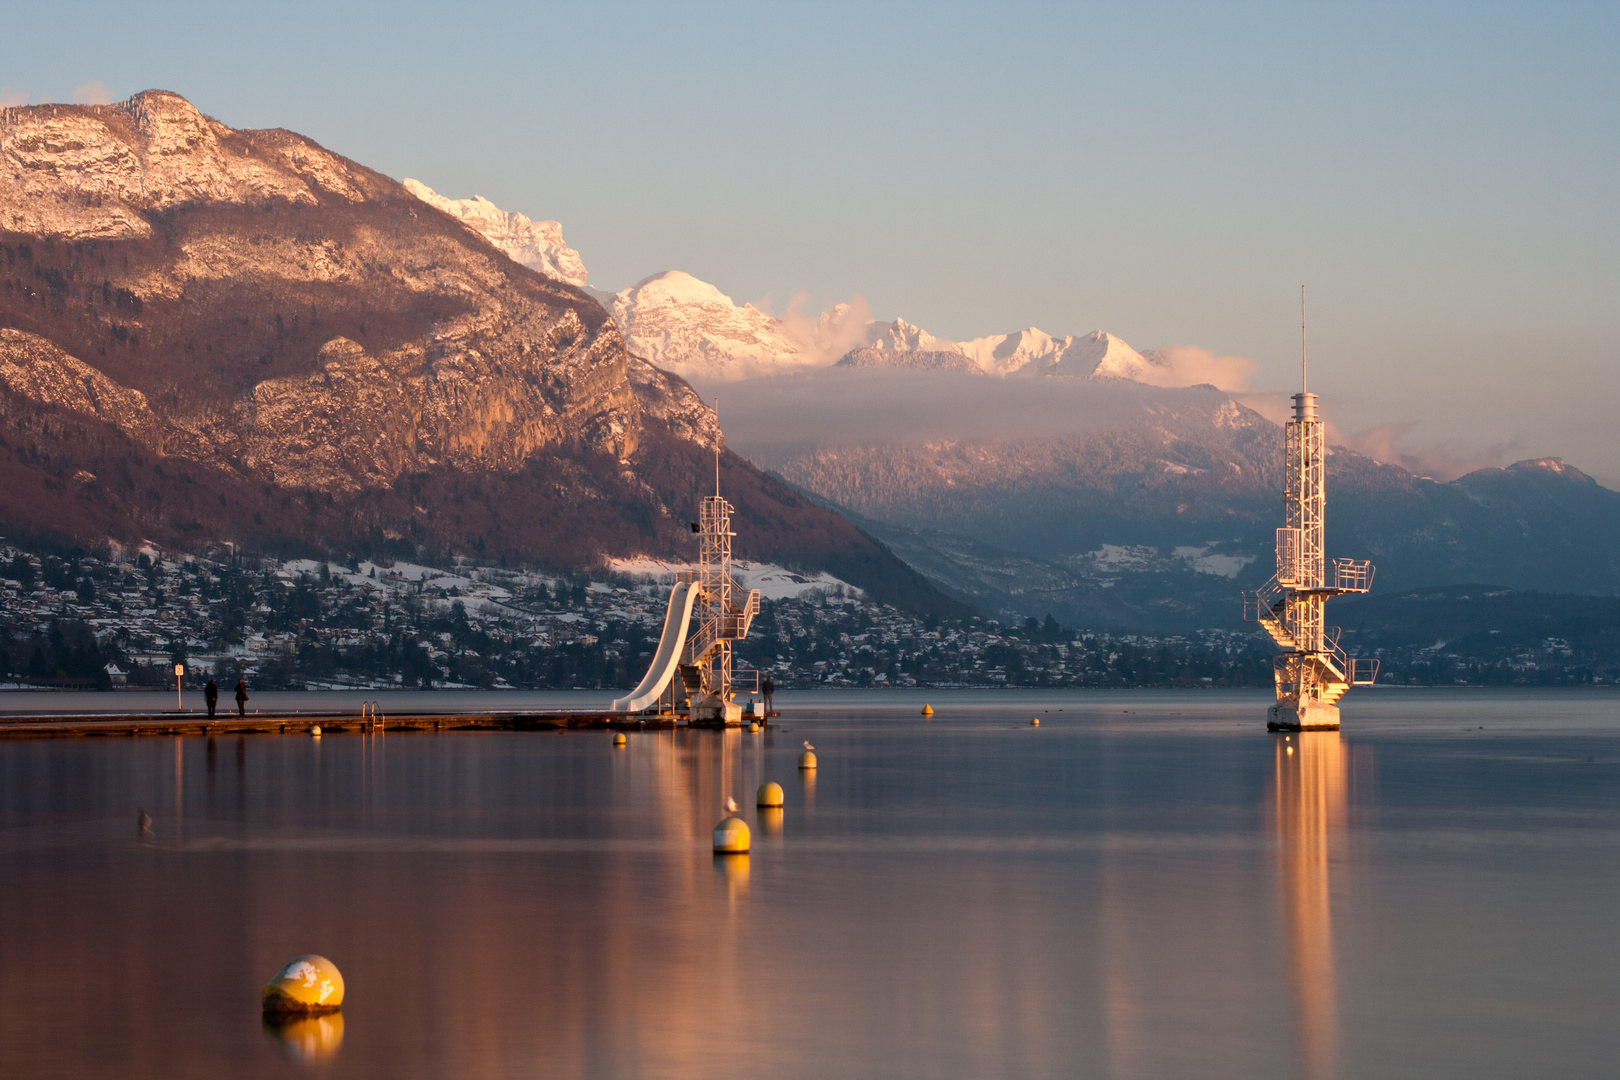 Lac_Annecy_01